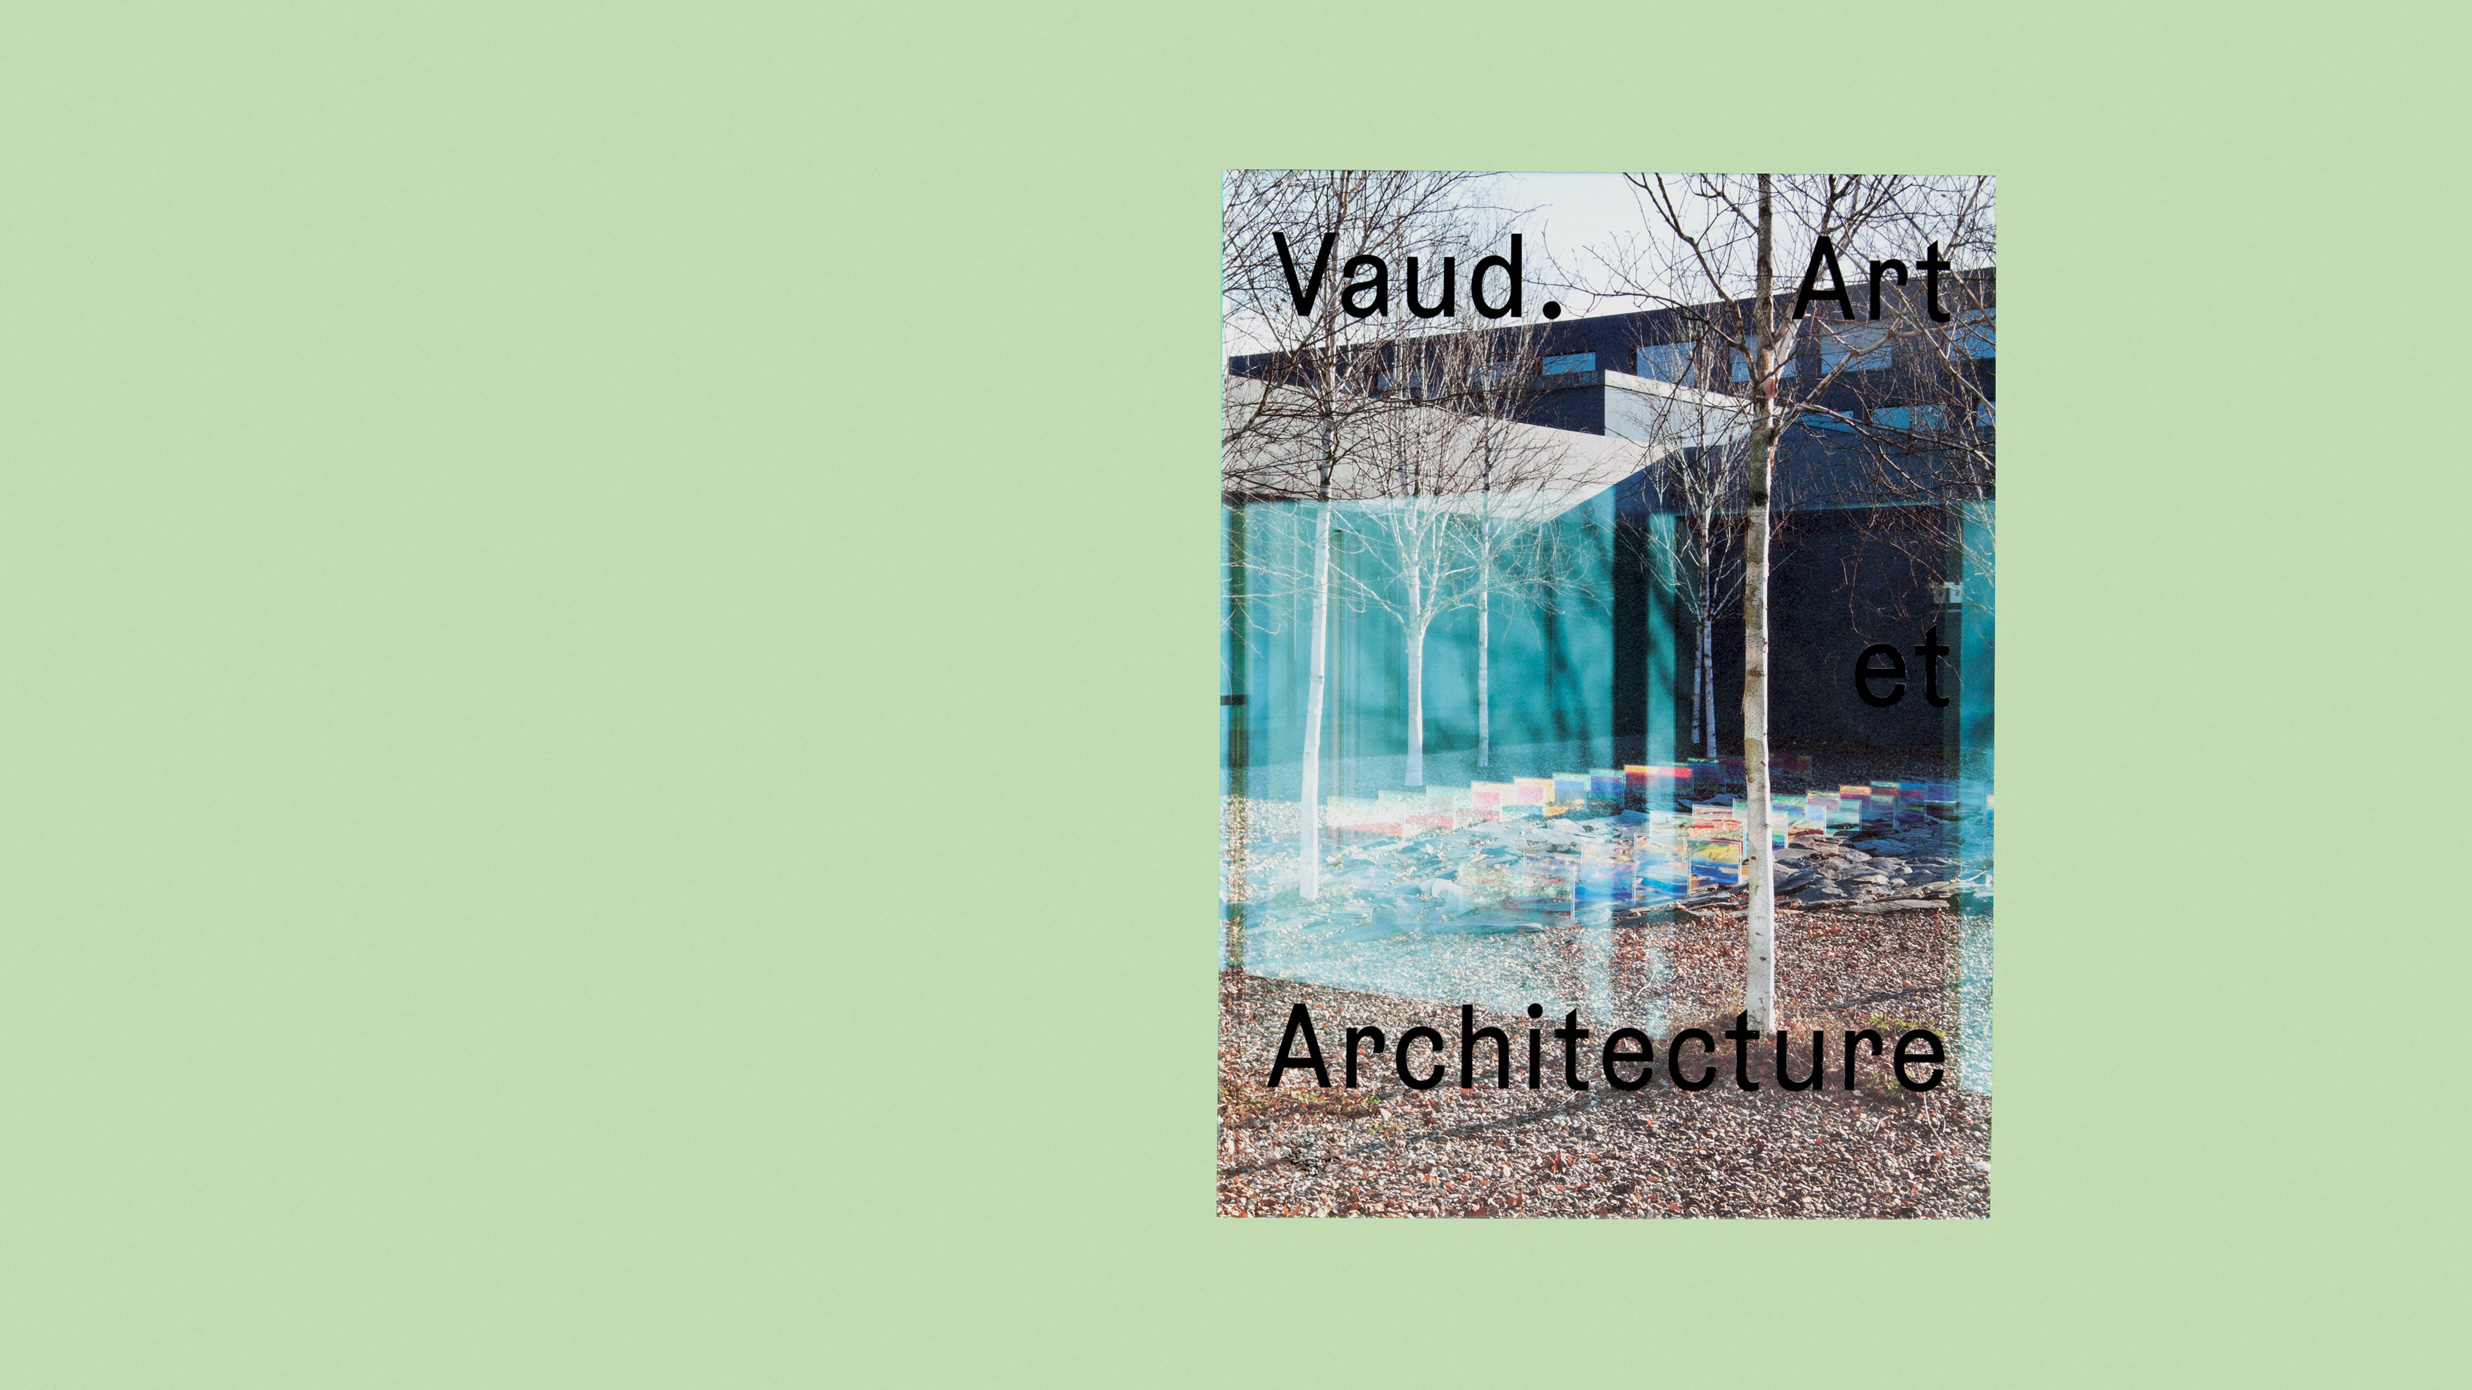 Studio aur le sack vaud art et architecture for Art et architecture